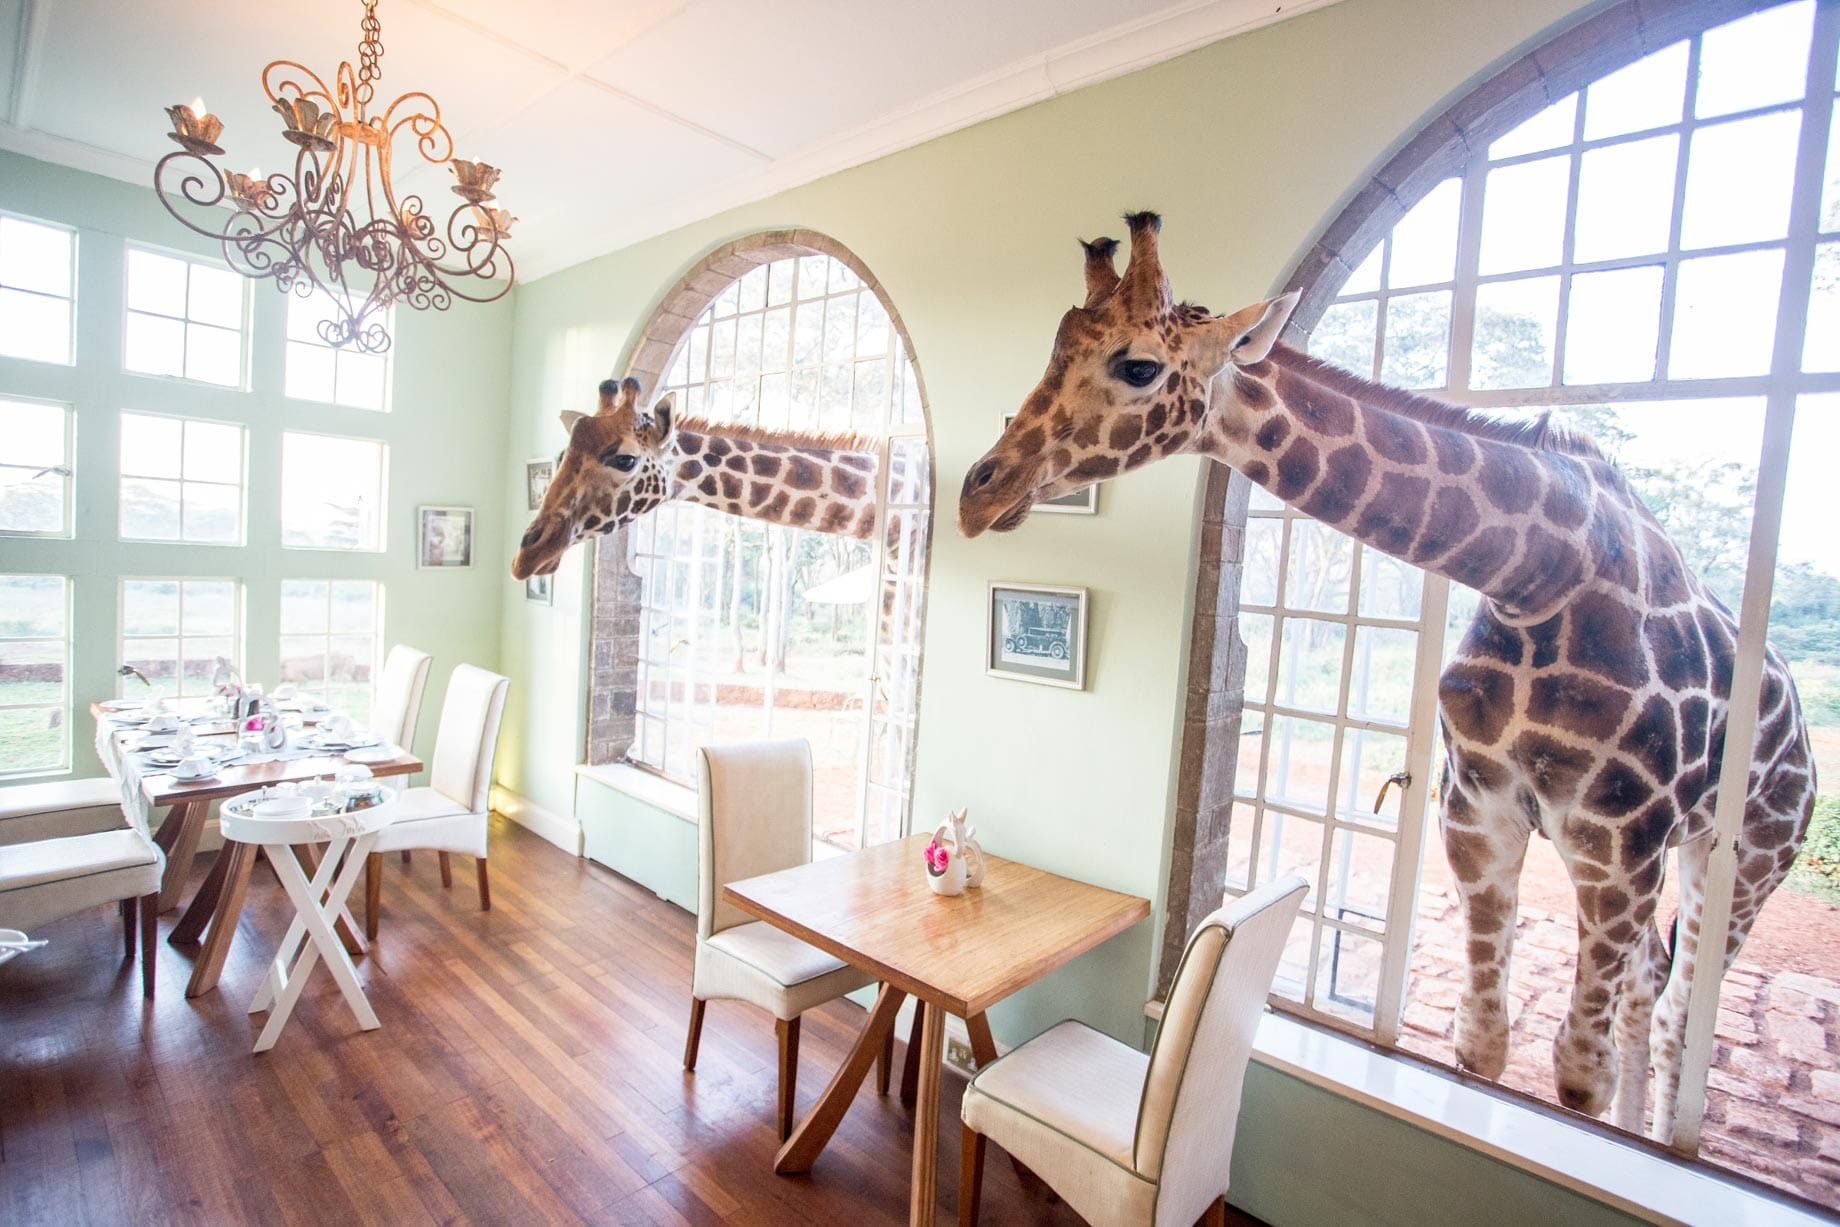 Eating Breakfast With Giraffes In Africa